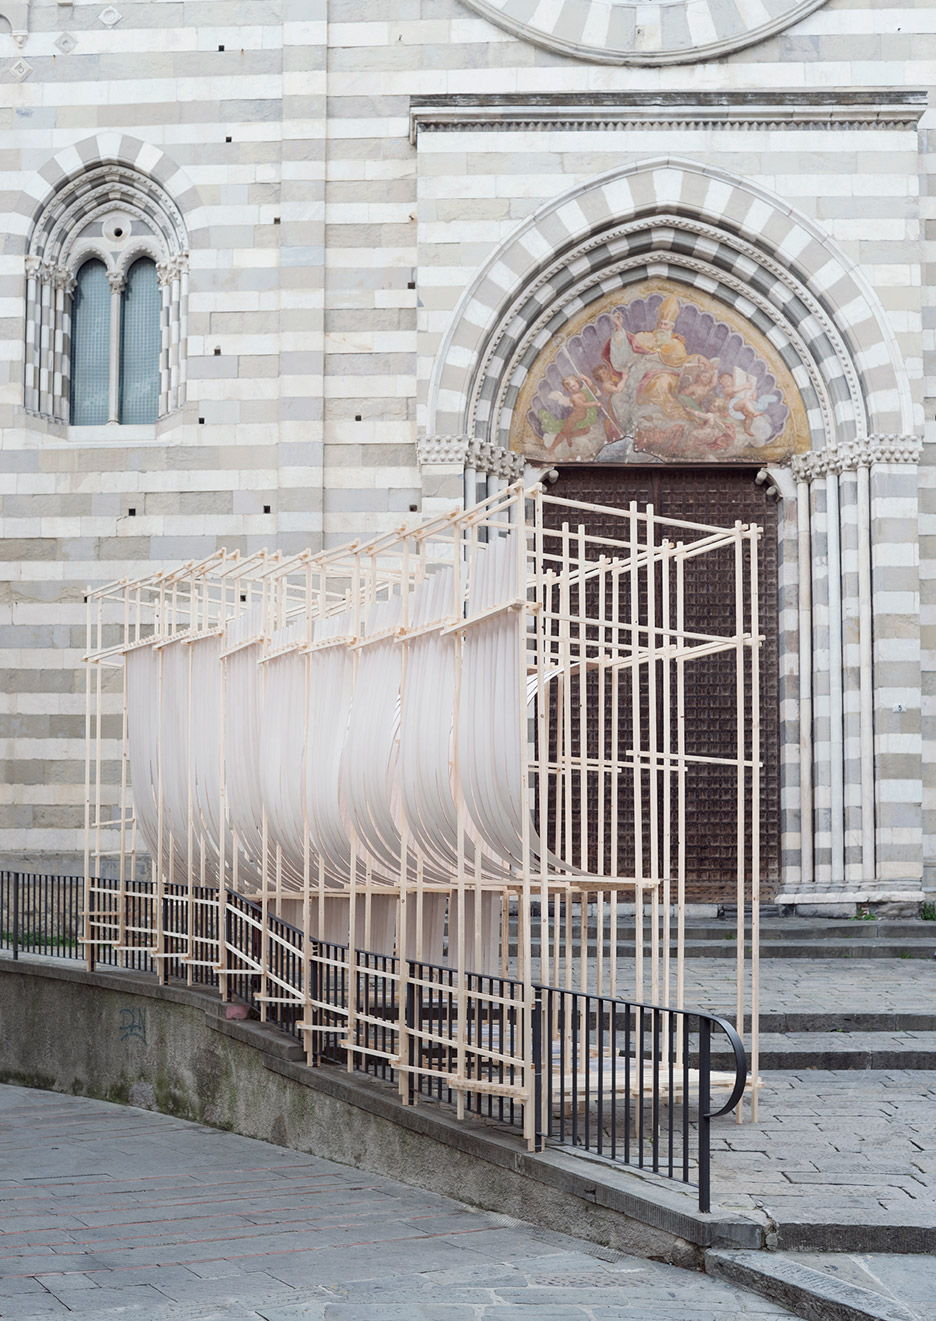 Bent installation for Genoa's New Generations festival resembles billowing sails